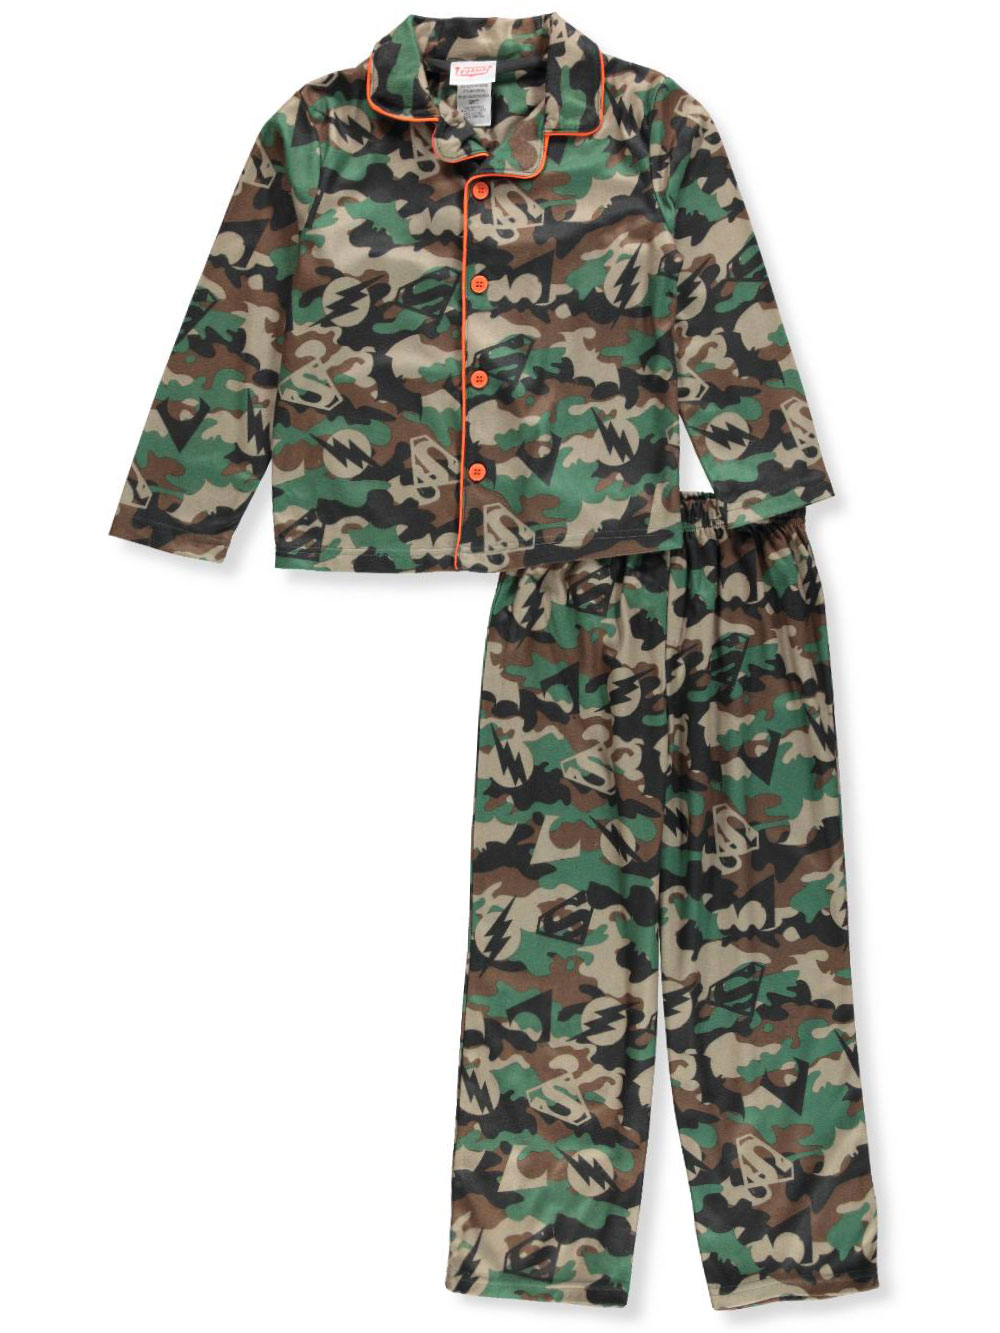 Justice League Boys' 2-Piece Pajamas